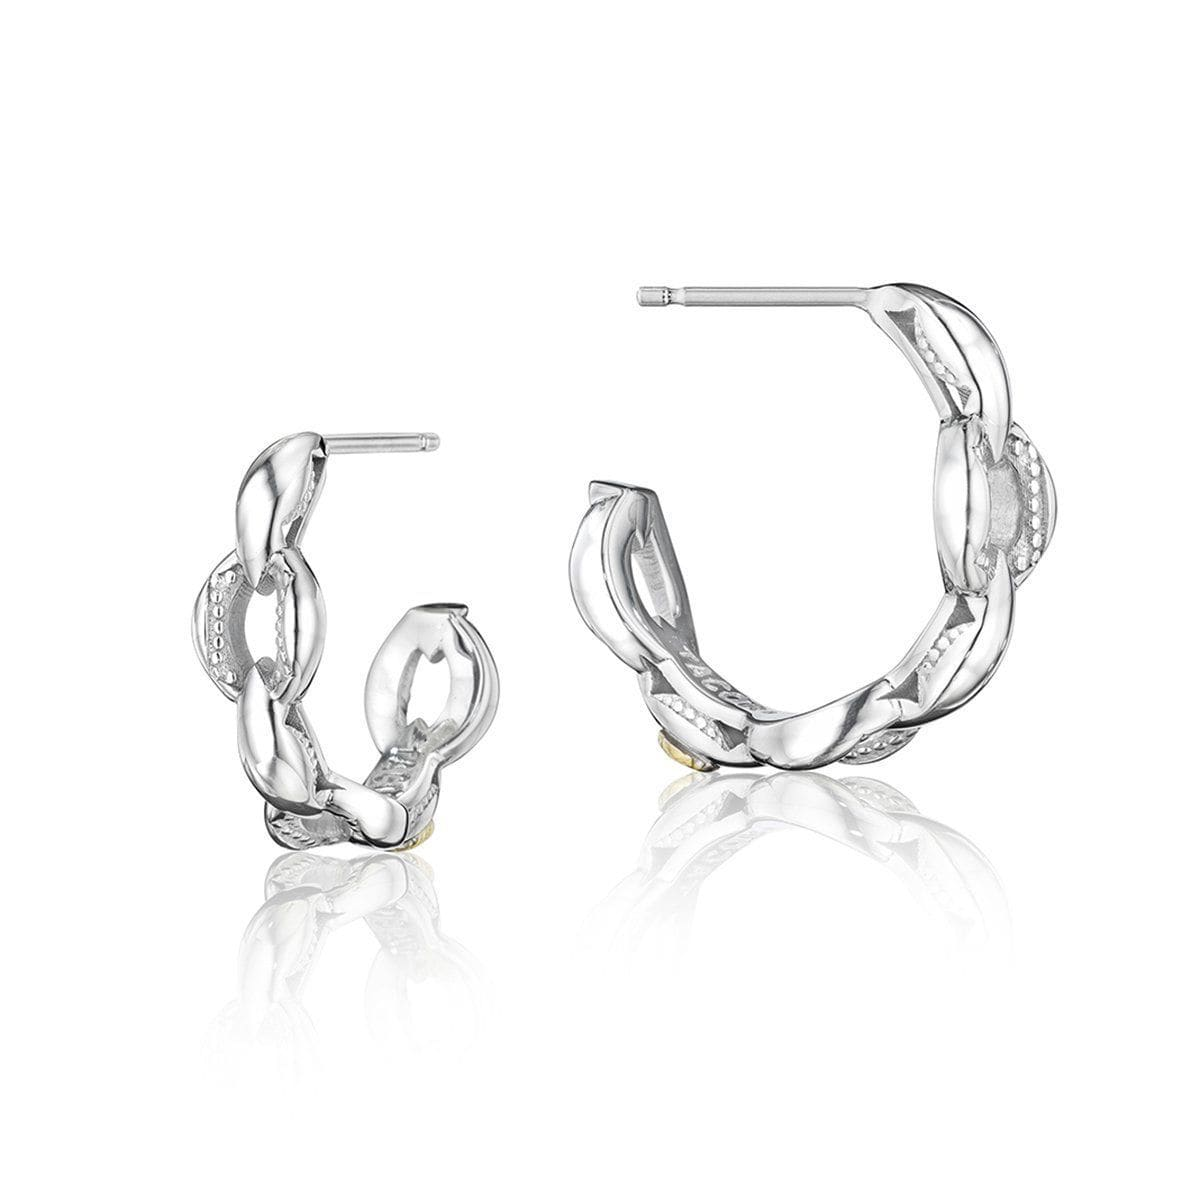 Silver Hoop Earrings - SE197-Tacori-Renee Taylor Gallery